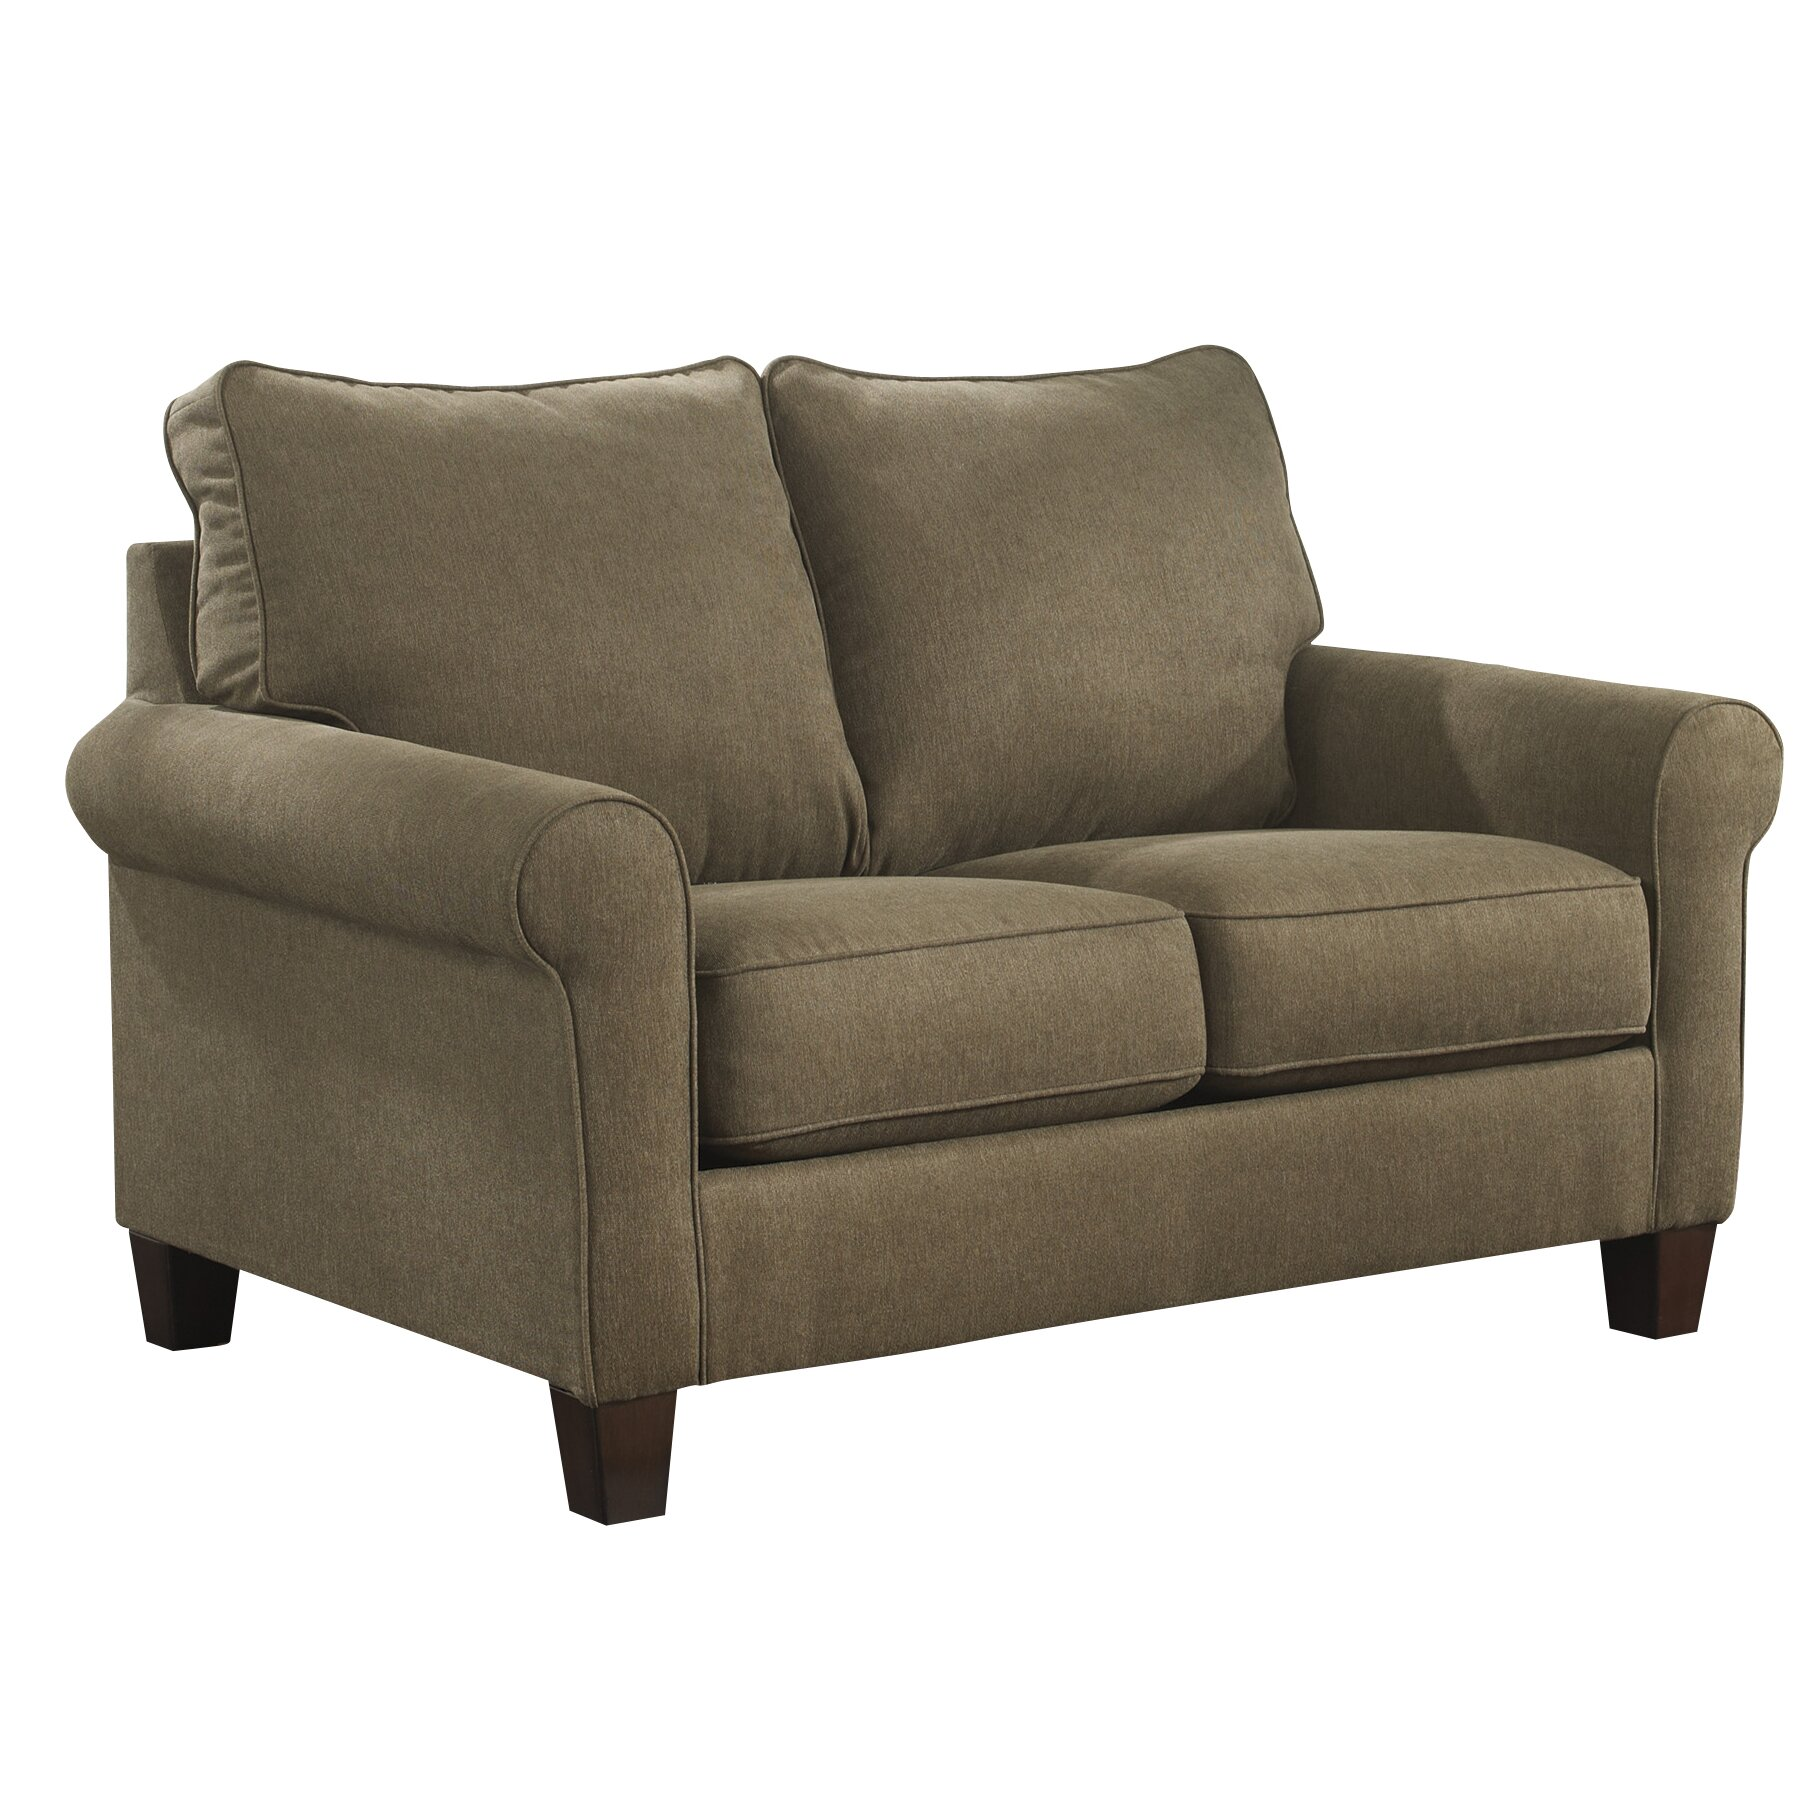 Warefair Com: Three Posts Osceola Twin Sleeper Sofa & Reviews